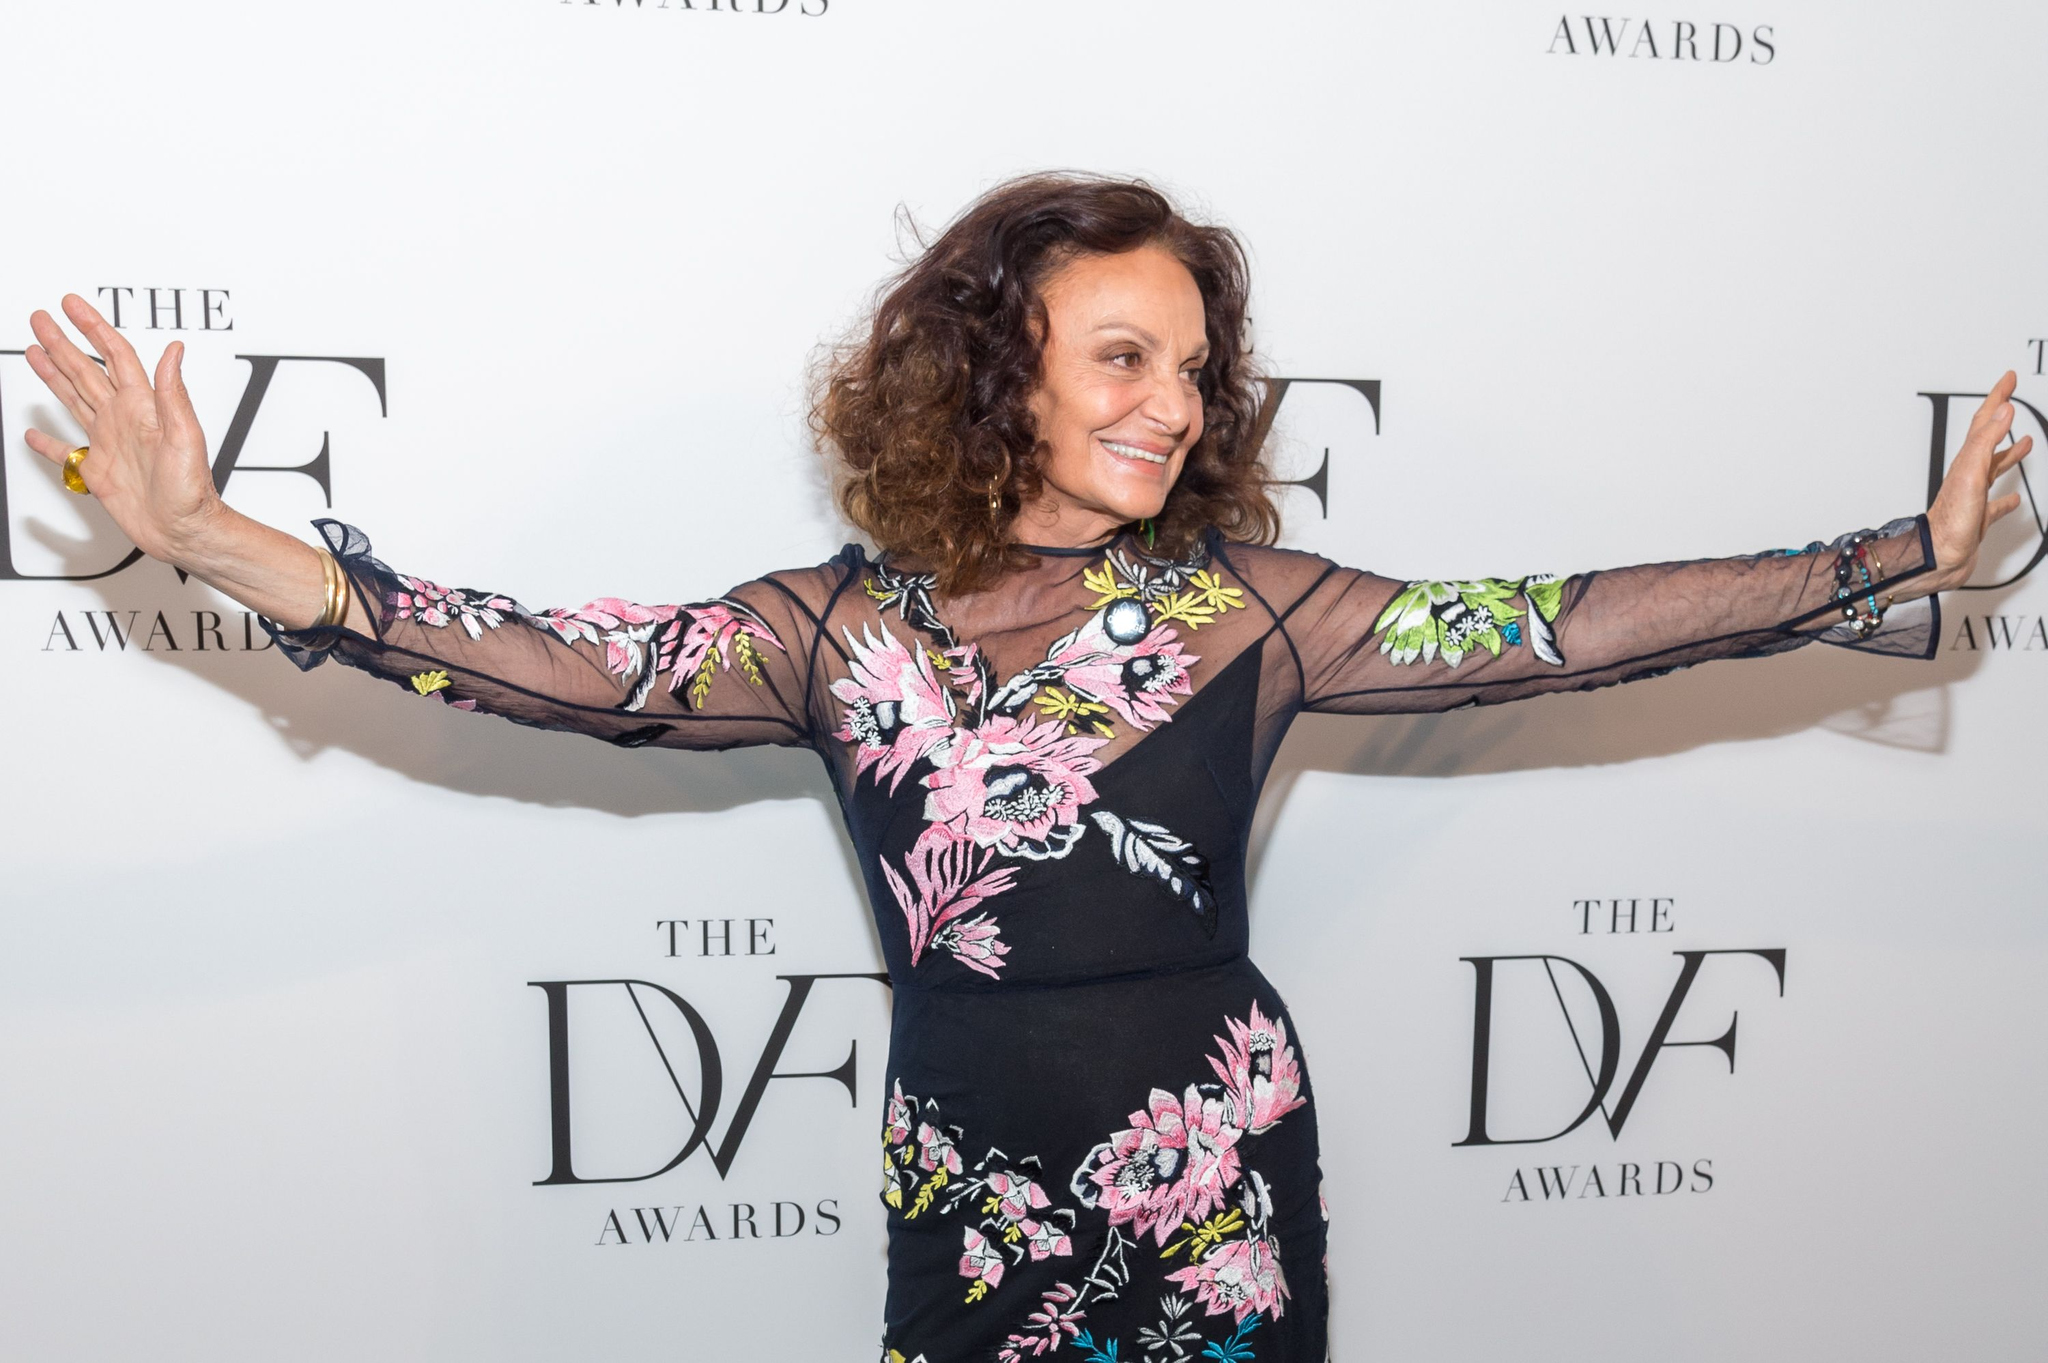 Diane von Furstenberg9th Annual DVF Awards, Arrivals, New York, USA - 13 Apr 2018